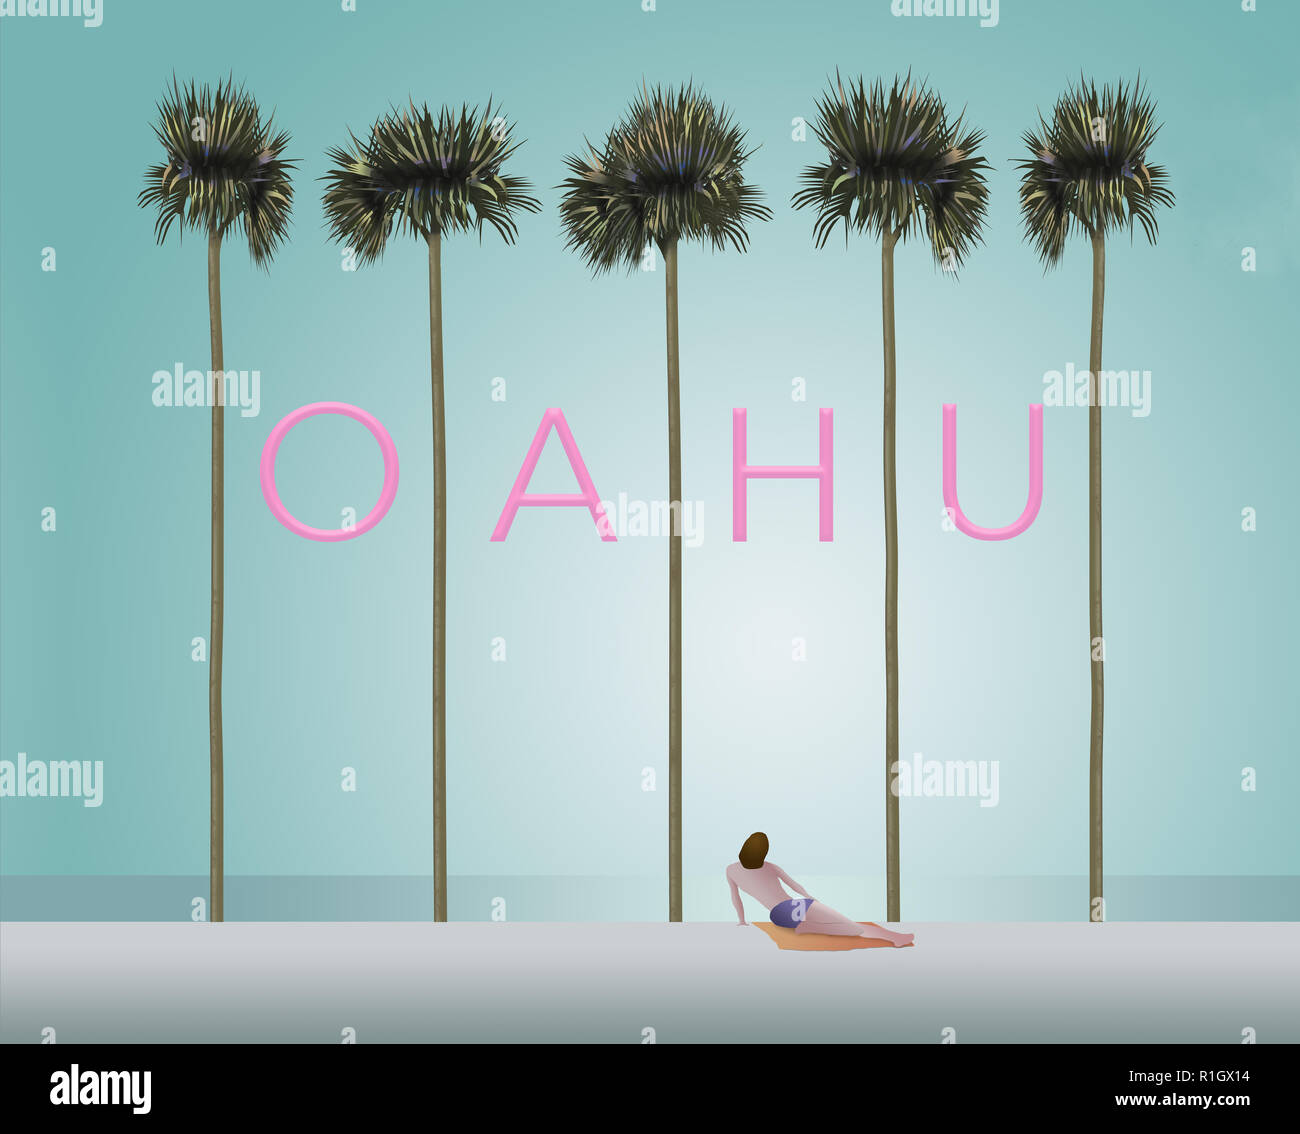 Tall palm trees and a sunbather on a white sand beach set the scene for the vacation destination Oahu. This is an illustration. - Stock Image